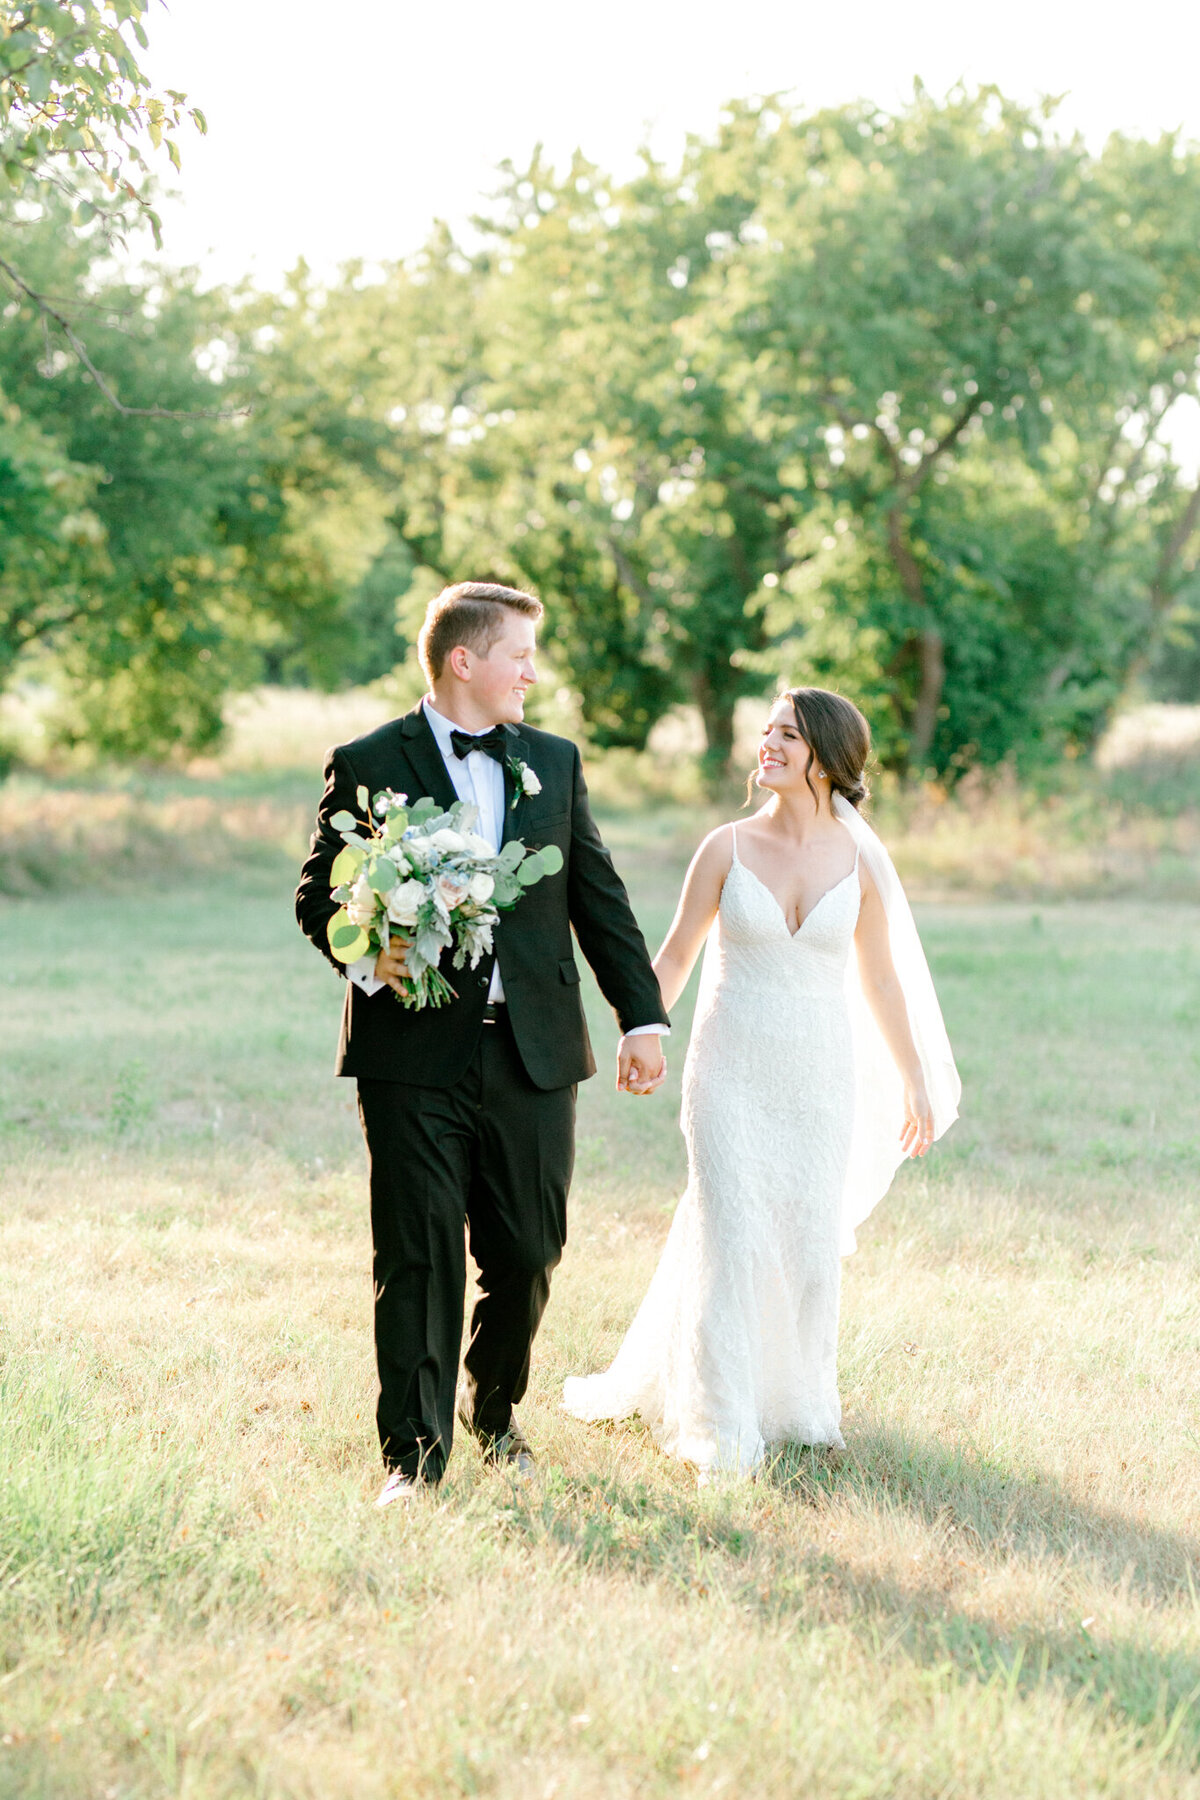 Anna & Billy's Wedding at The Nest at Ruth Farms | Dallas Wedding Photographer | Sami Kathryn Photography-171